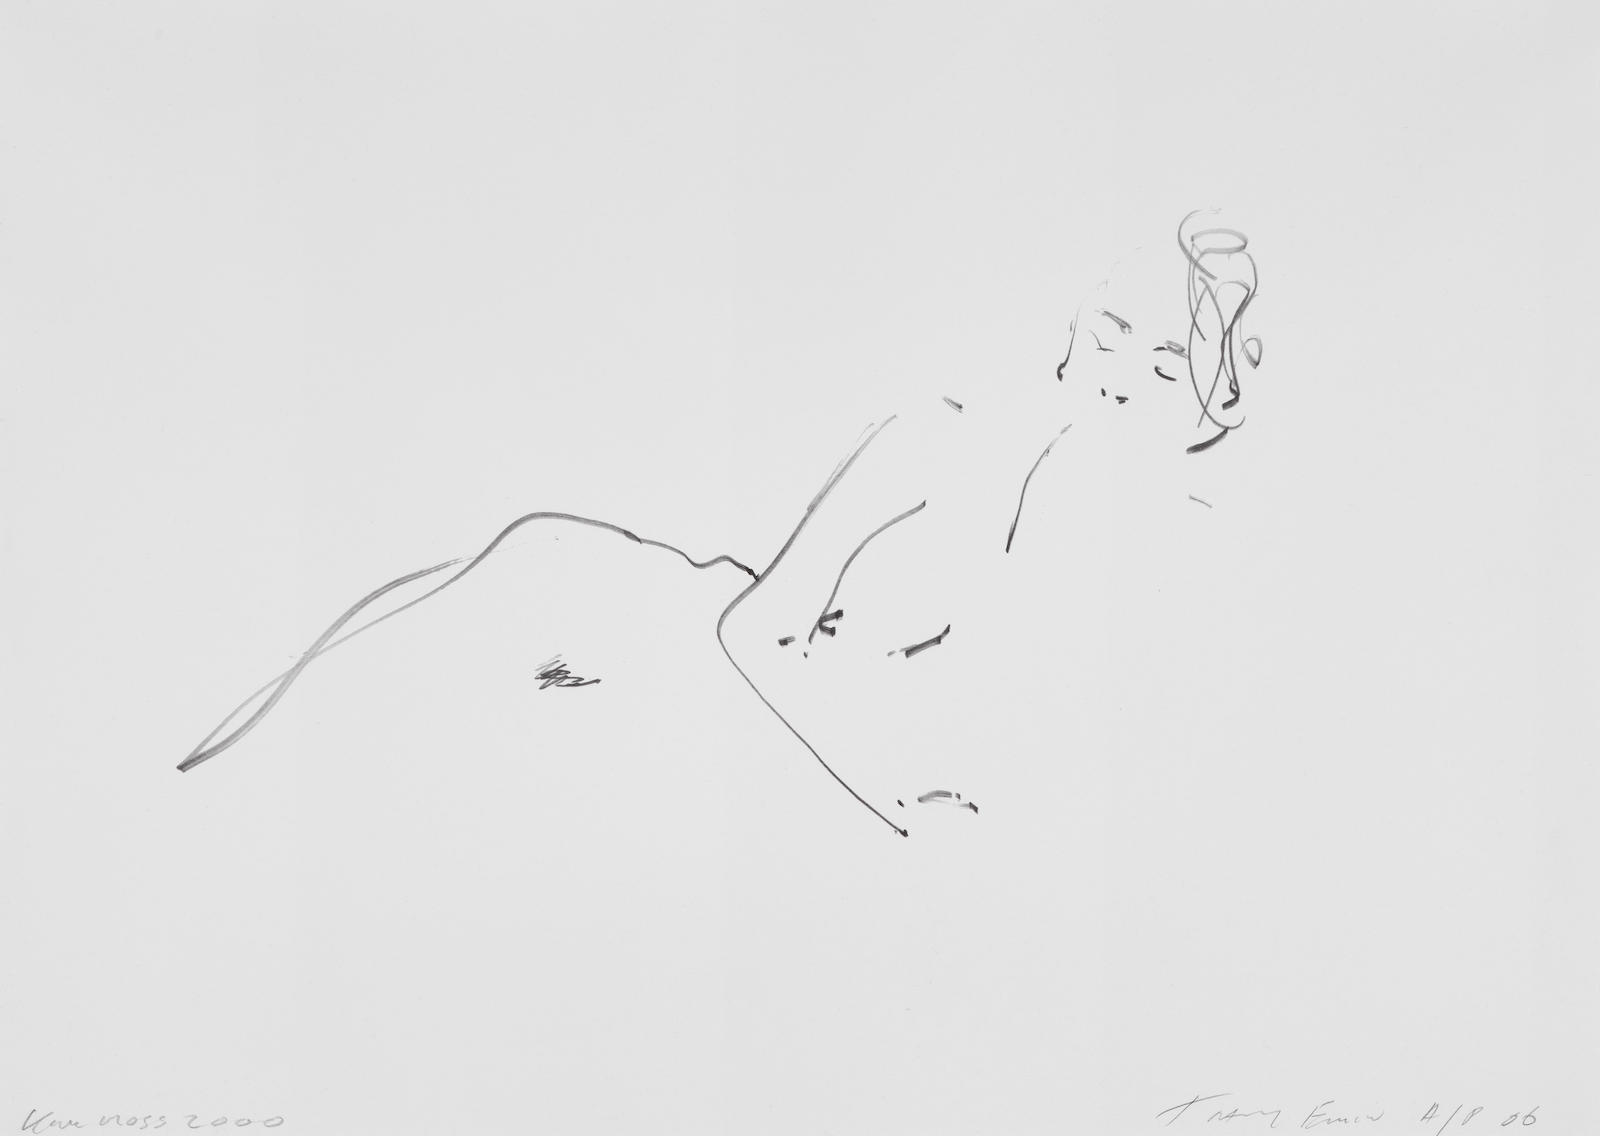 Tracey Emin-Kate Moss 2000-2006